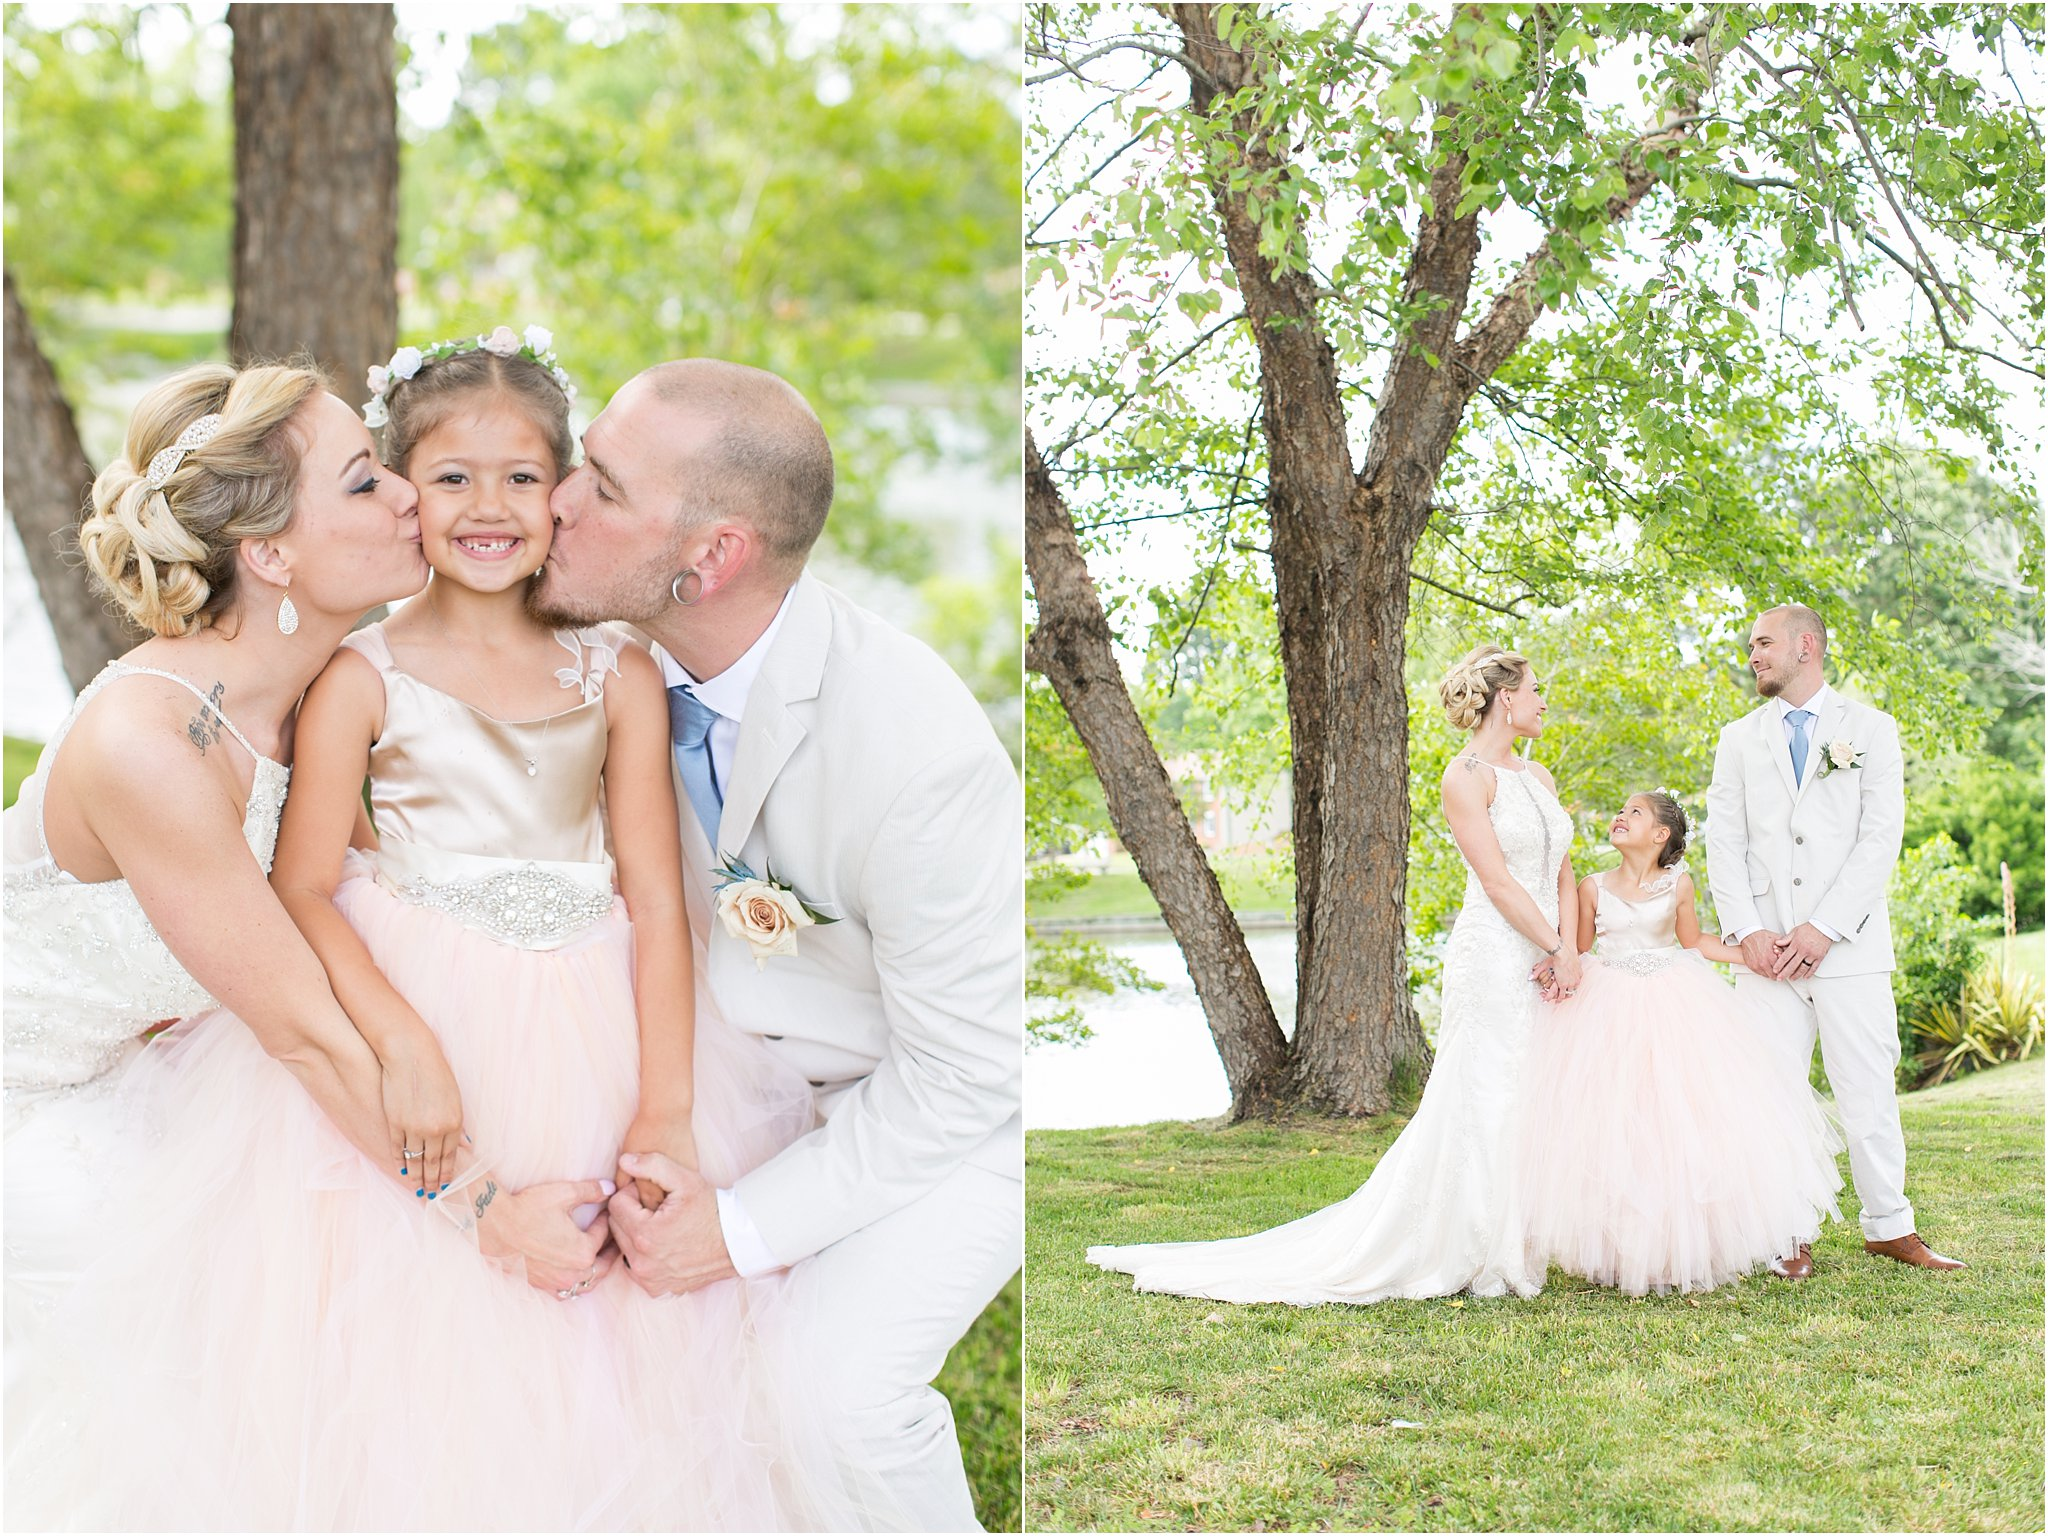 jessica_ryan_photography_virginia_virginiabeachweddingphotographer_studioIdo_backyardwedding_waterfrontwedding_1689